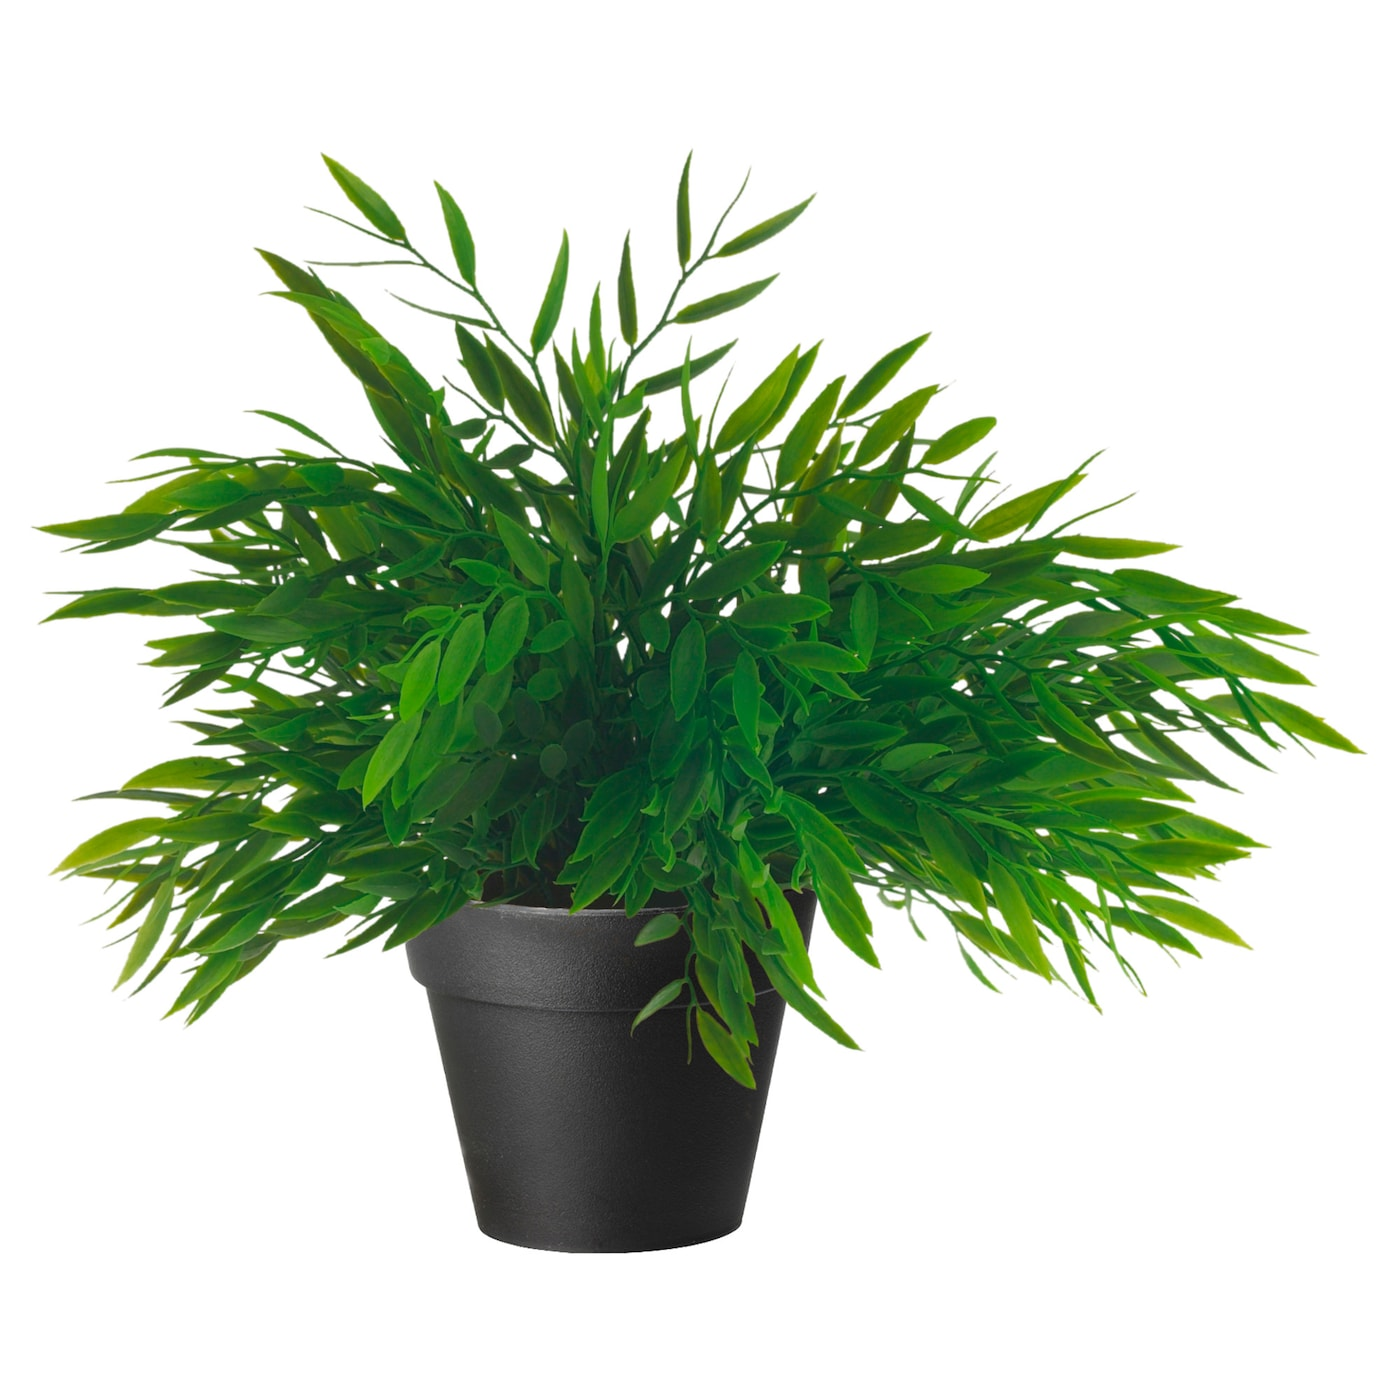 Fejka plante artificielle en pot bambou d 39 int rieur 10 cm for Plante bambou interieur